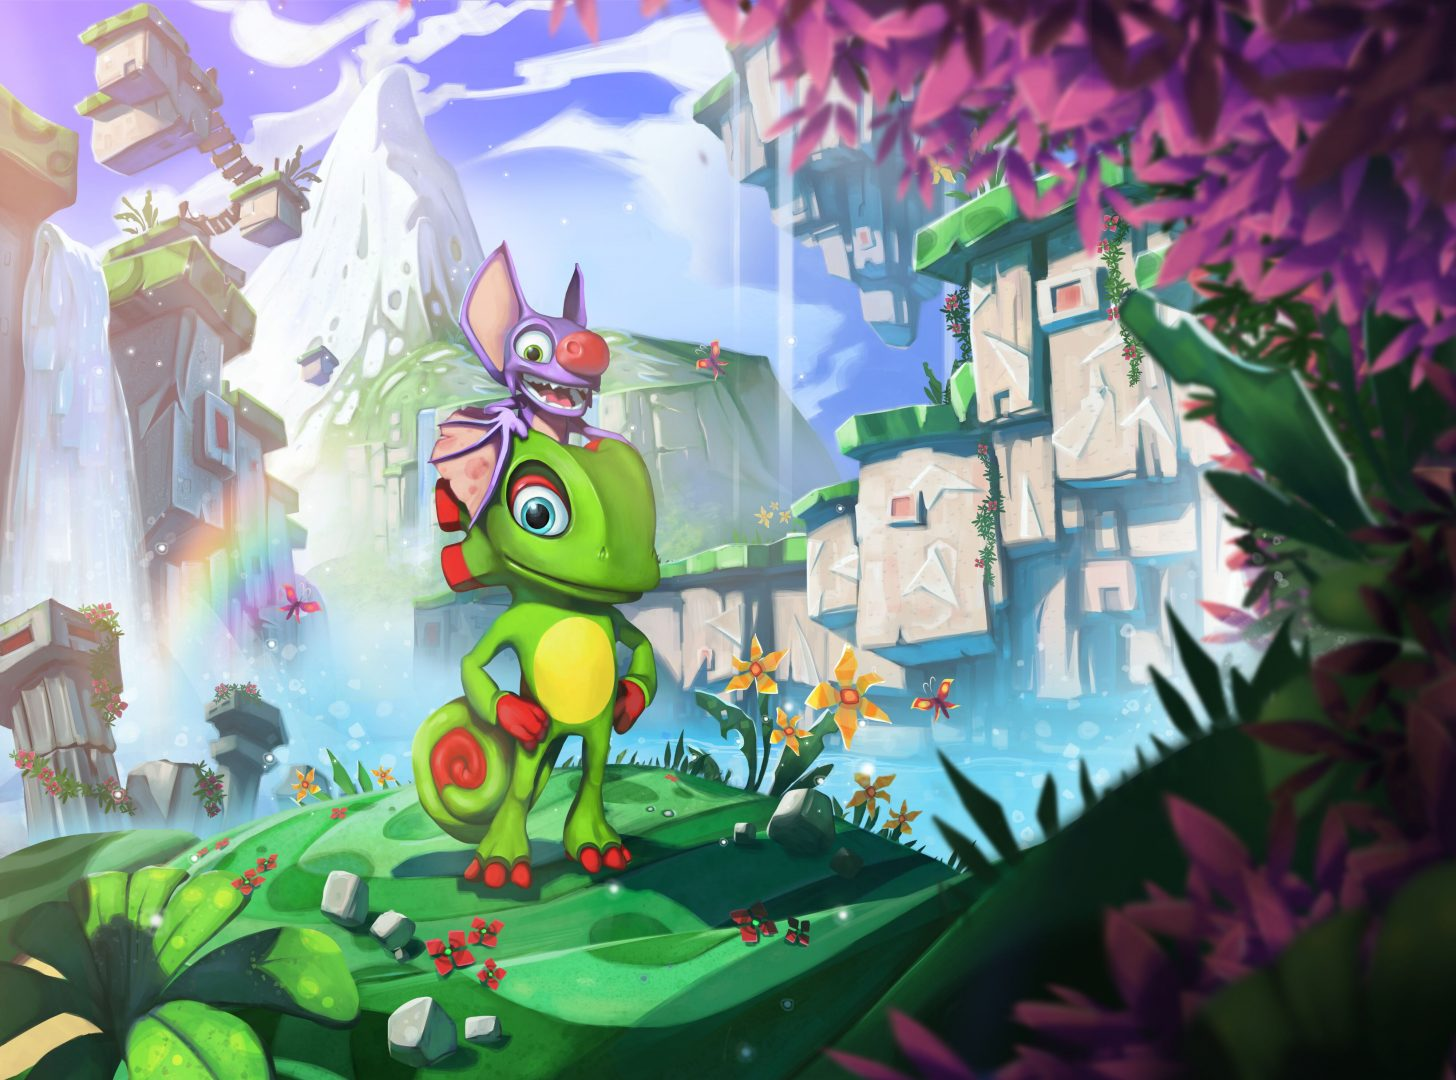 Yooka-Laylee devs announce Team 17 as publisher